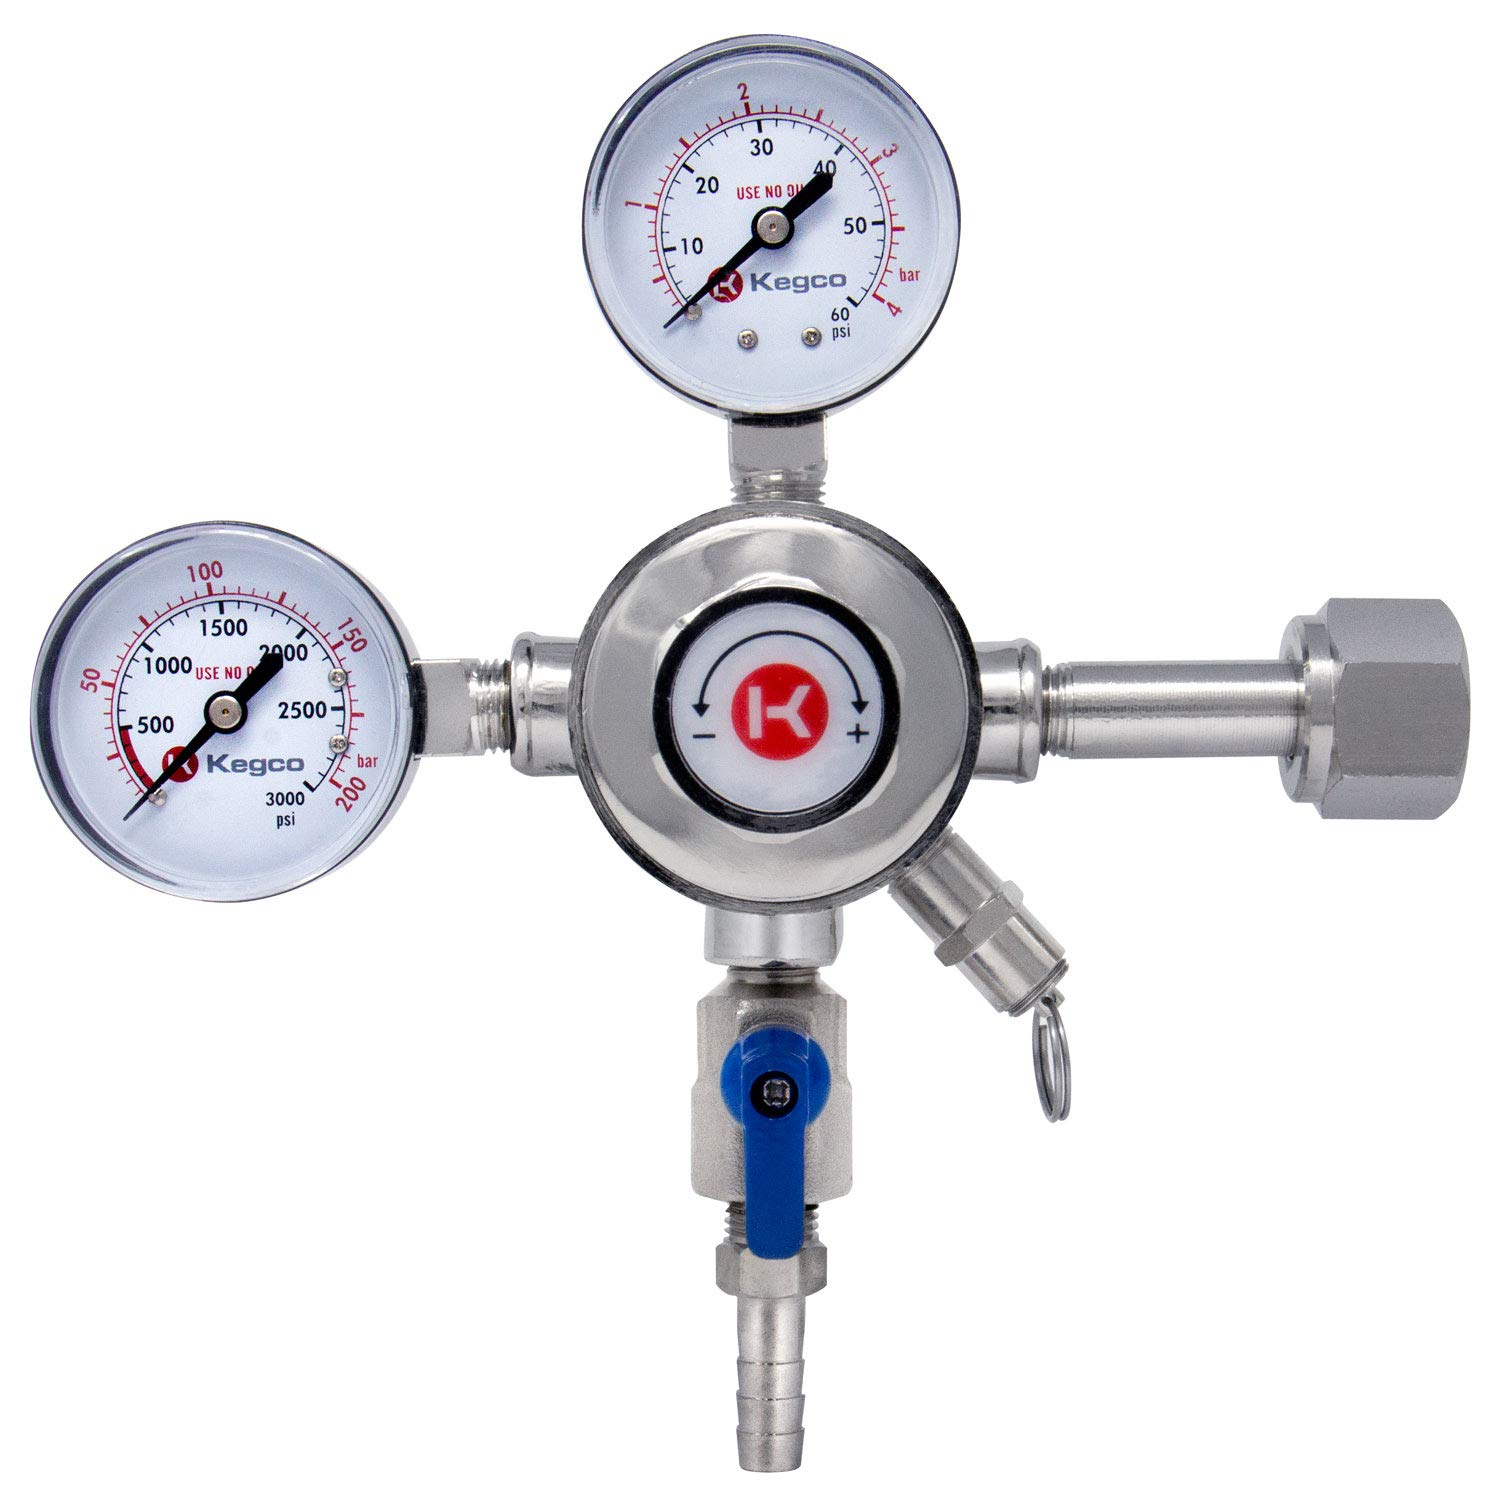 Kegco KC LH-542 Draft Beer Regulator, Chrome by Kegco